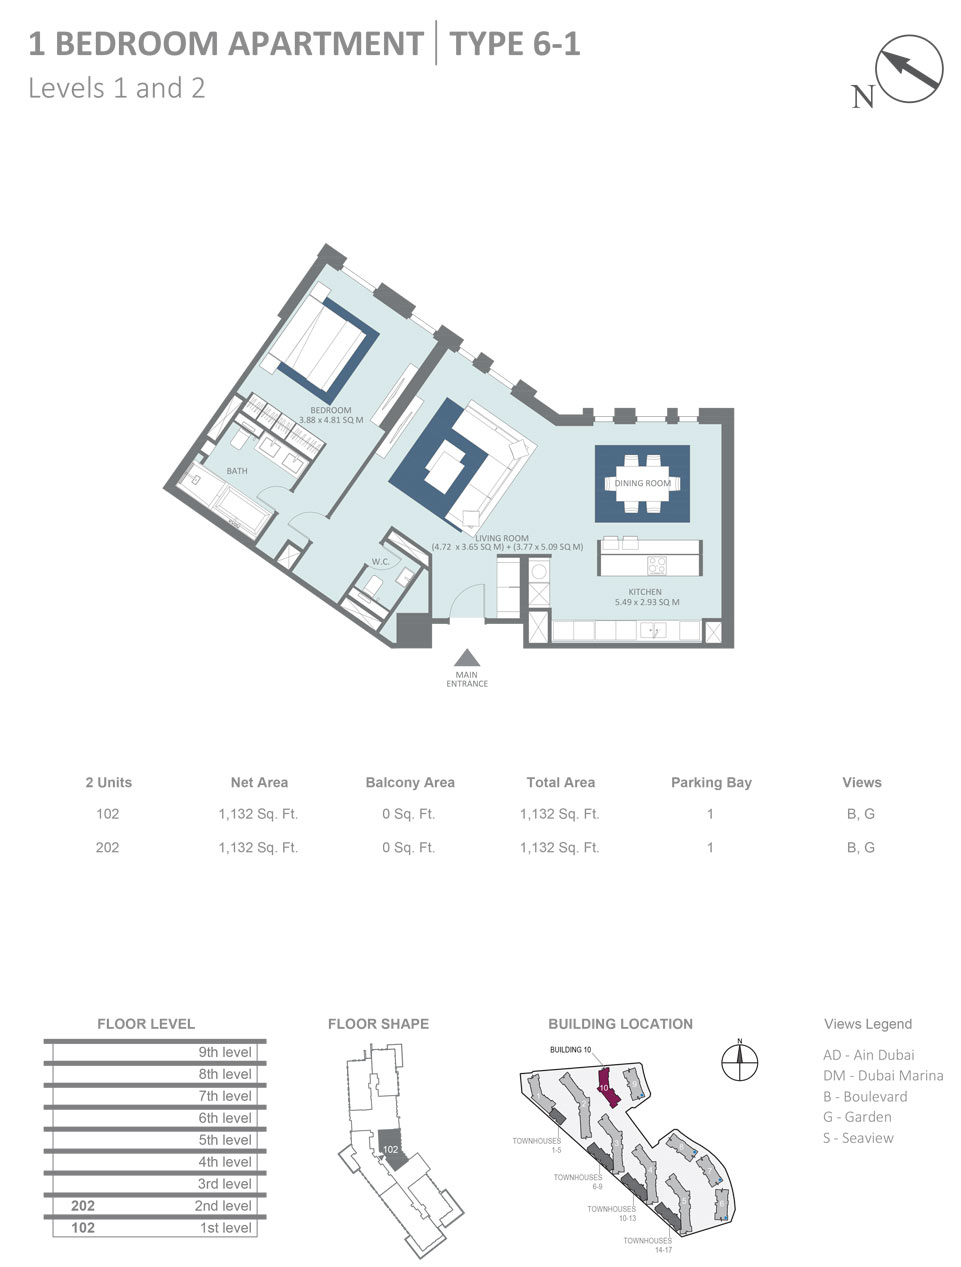 Building 10 -1 Bedroom Apartment Type 6, 1- Level 1 & 2 Size 1132  sq. ft.